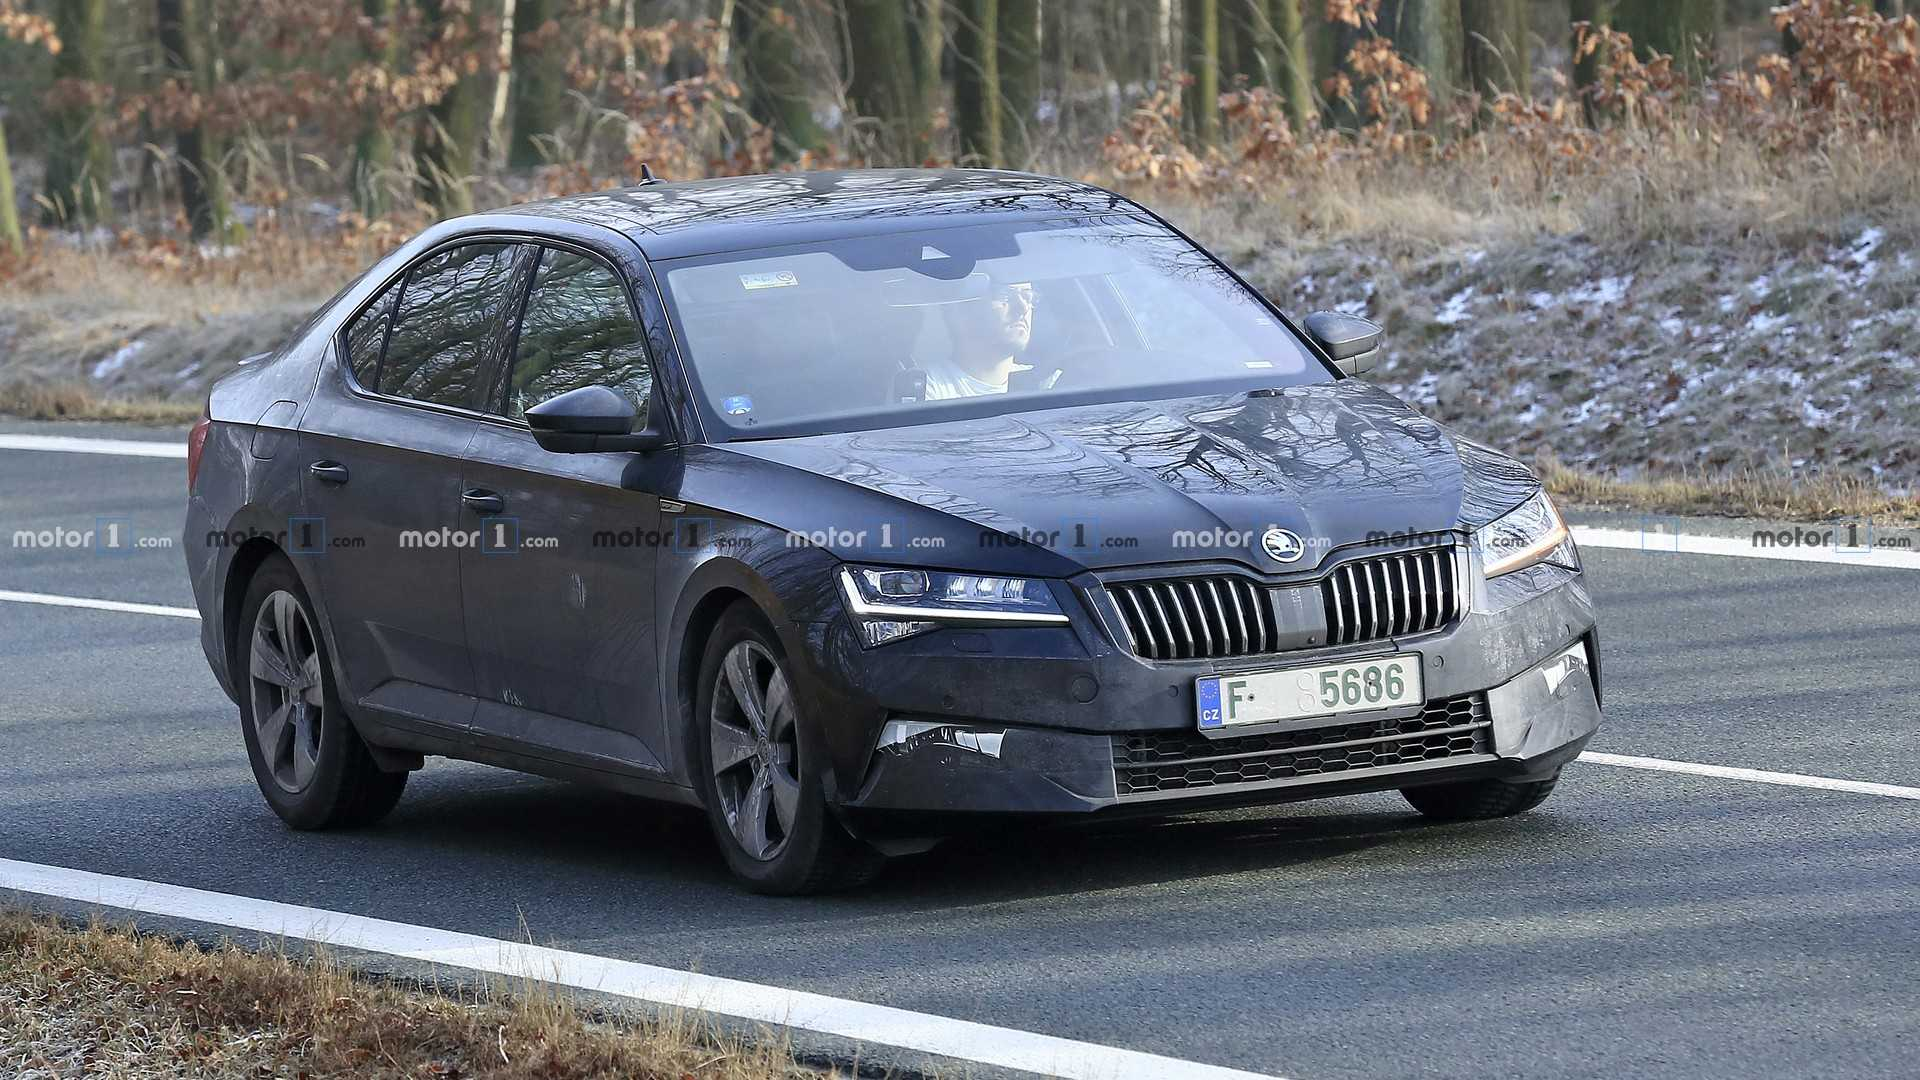 62 All New 2019 Skoda Superb Price And Release Date